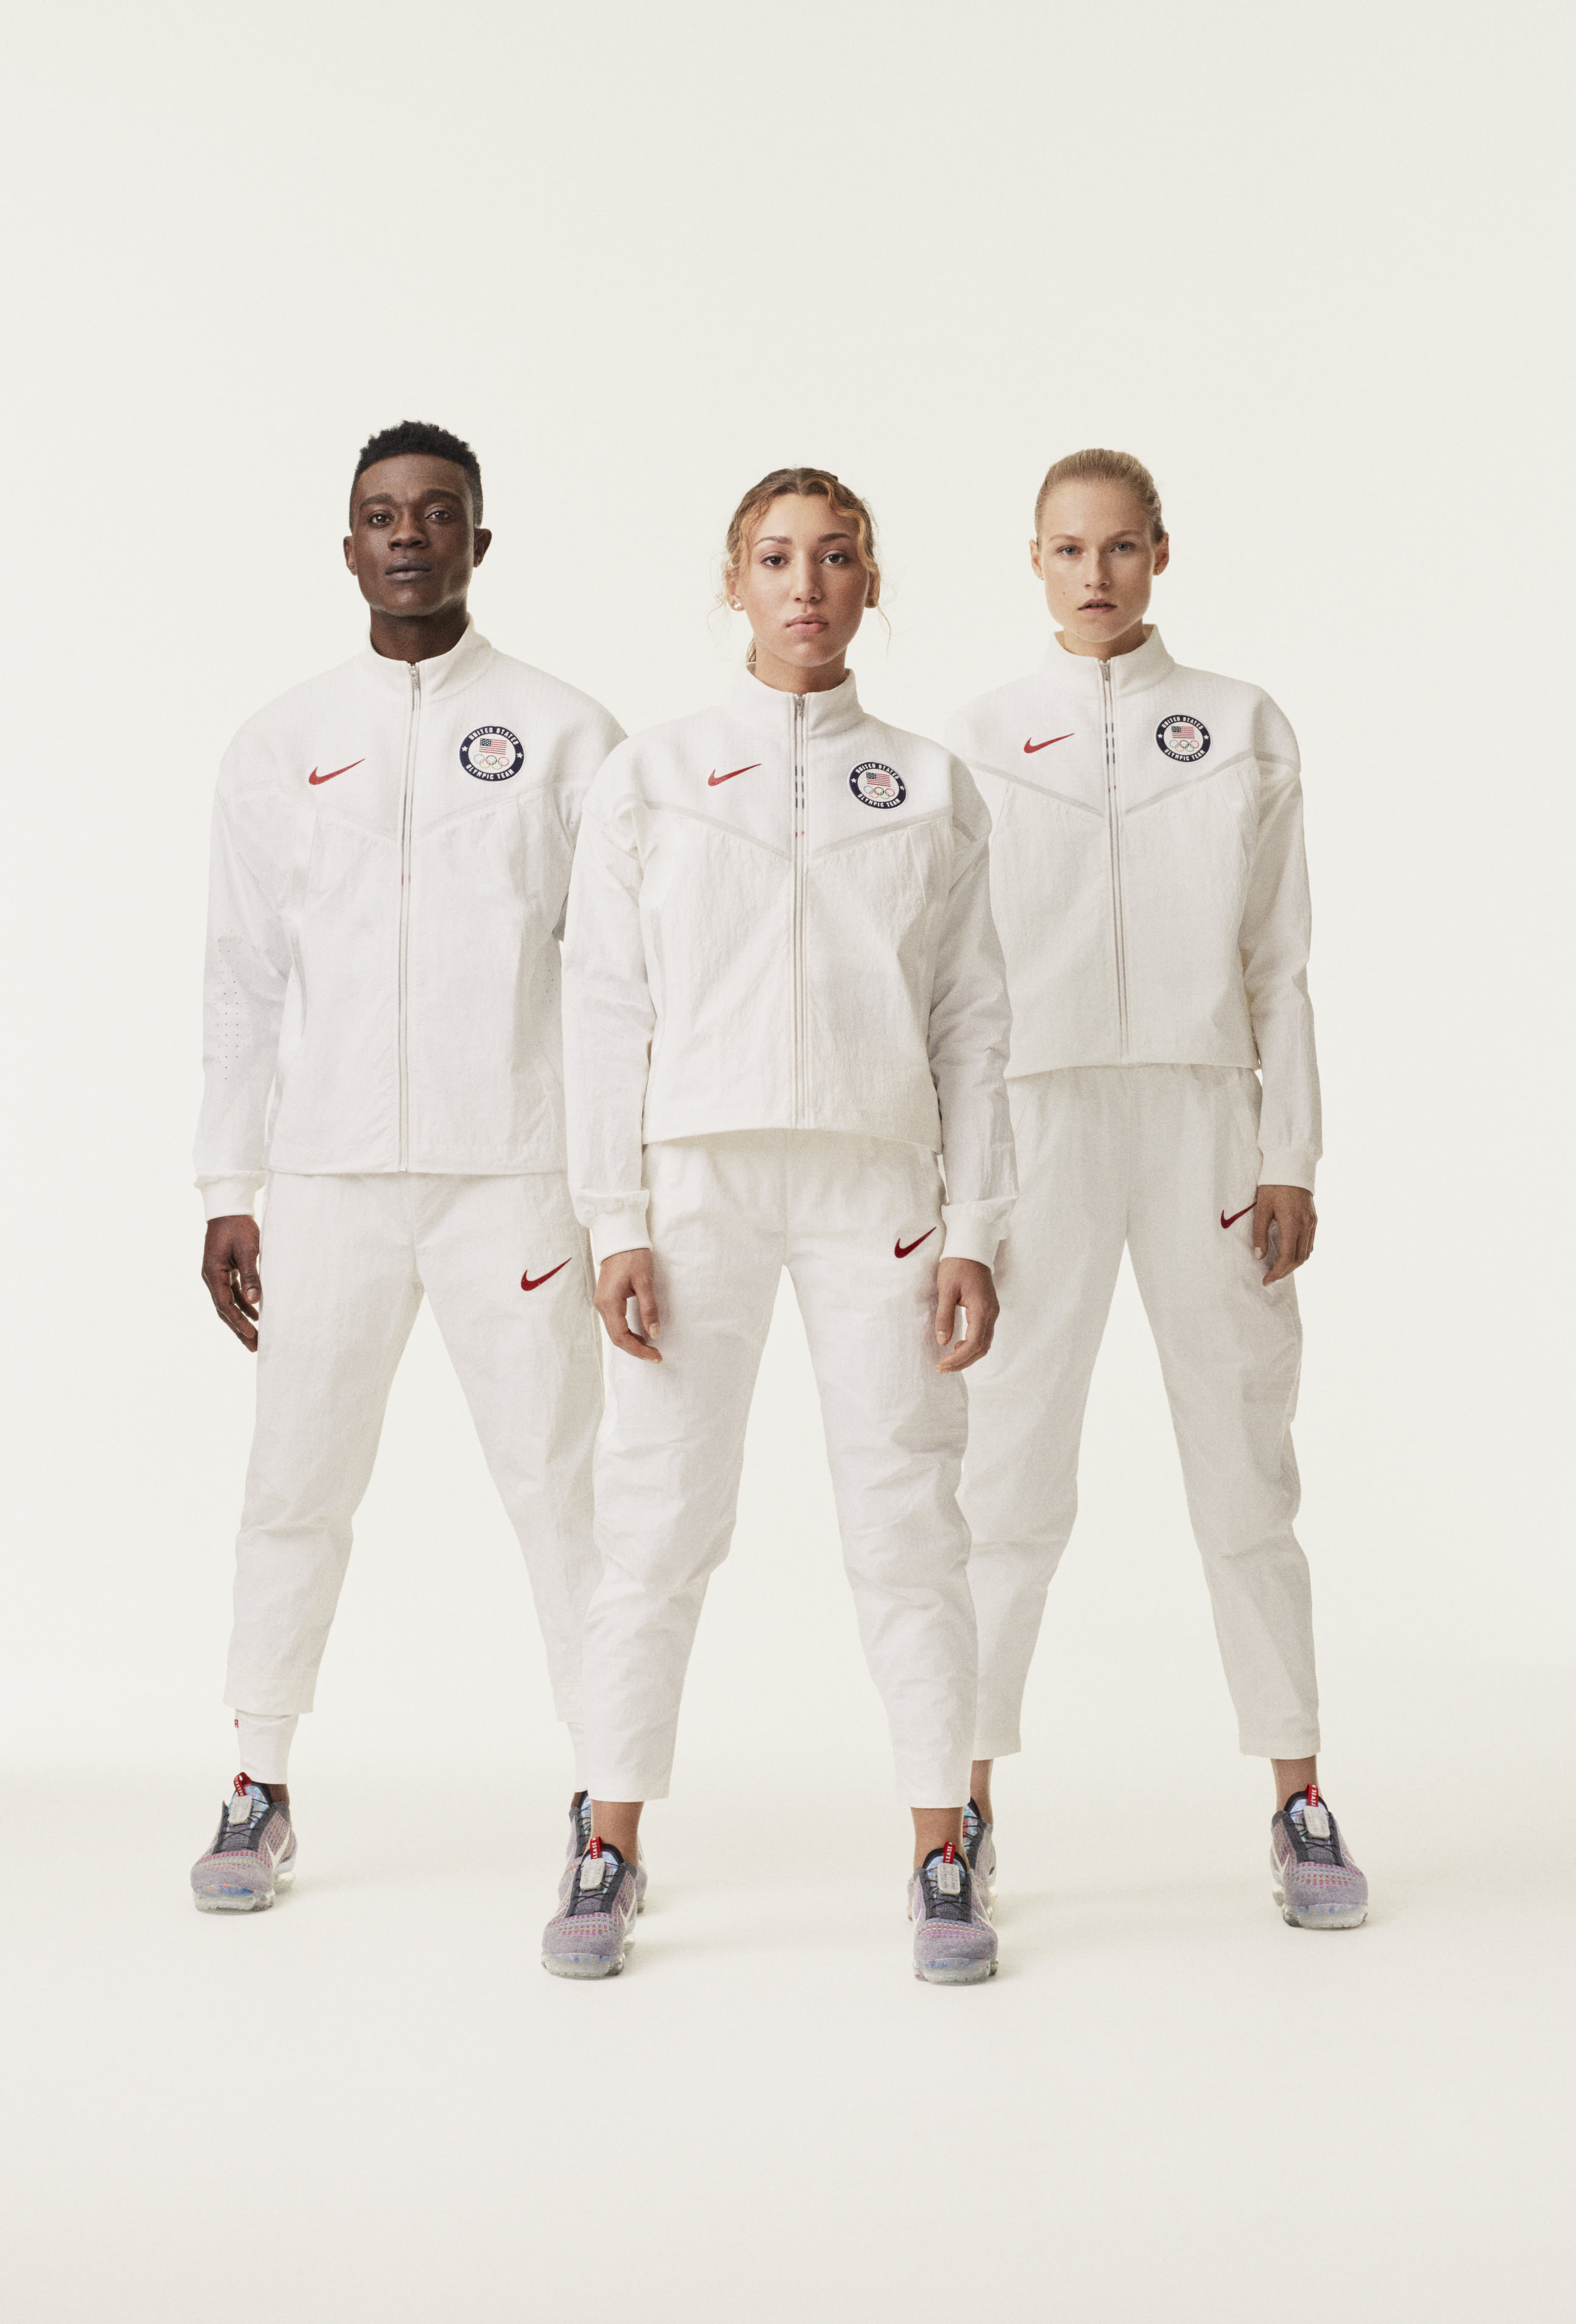 Redondear a la baja pozo Popular  Nike to dress 2020 Olympic athletes in uniforms made of recycled shoes